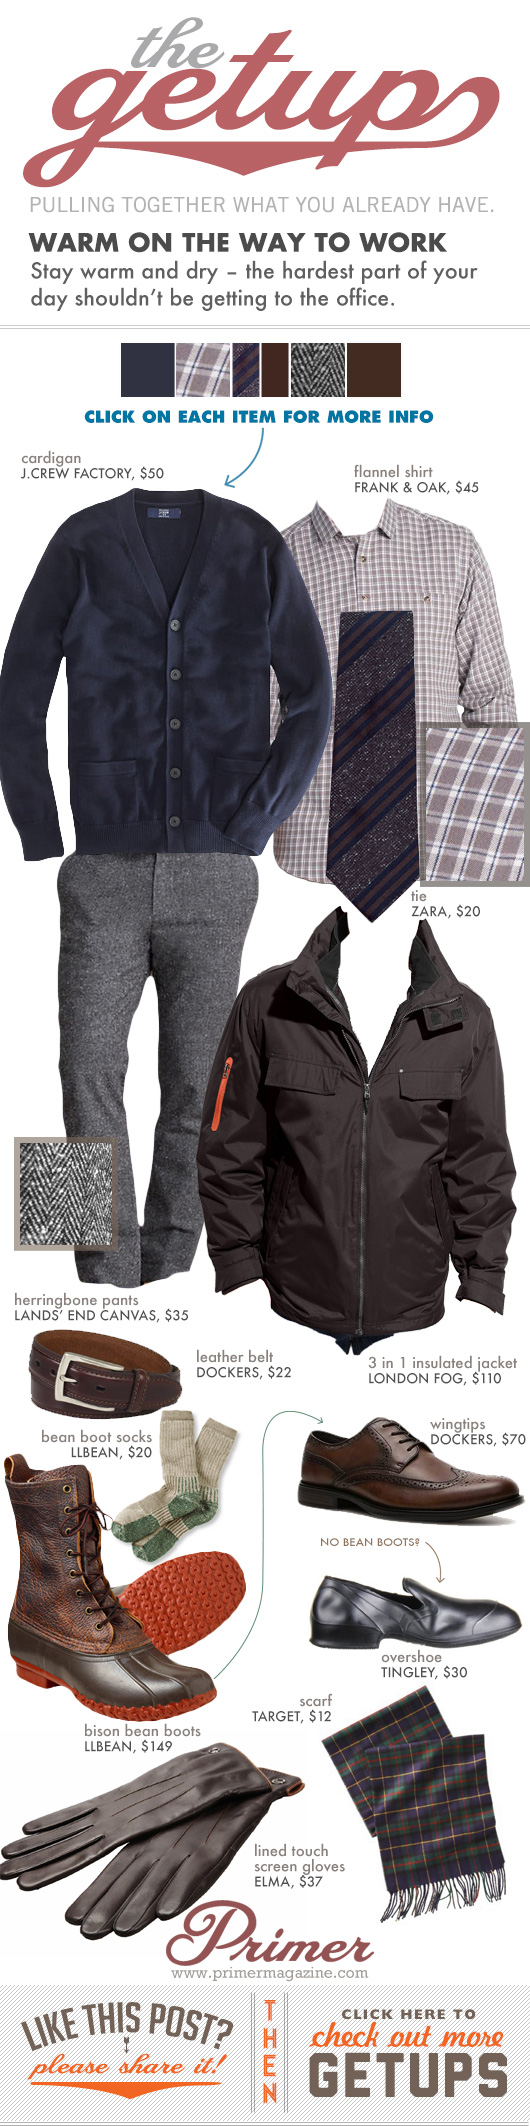 Getup Warm on the Way to Work: Cardigan sweater, shirt with tie, gray pants, LLBean Boots